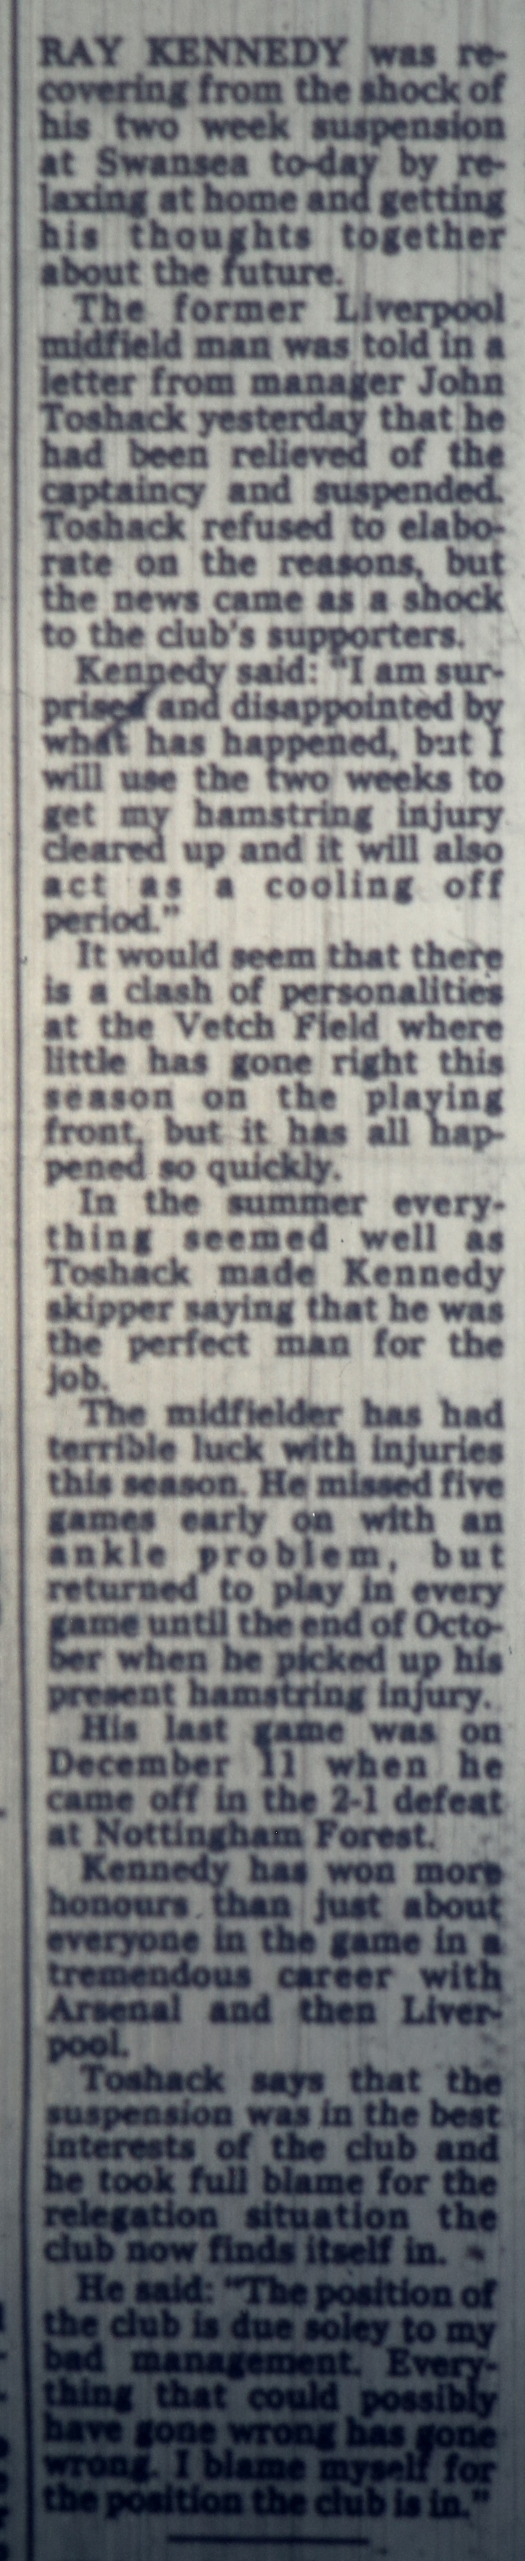 Kennedy stripped of captaincy by Swansea - 1982/83 season